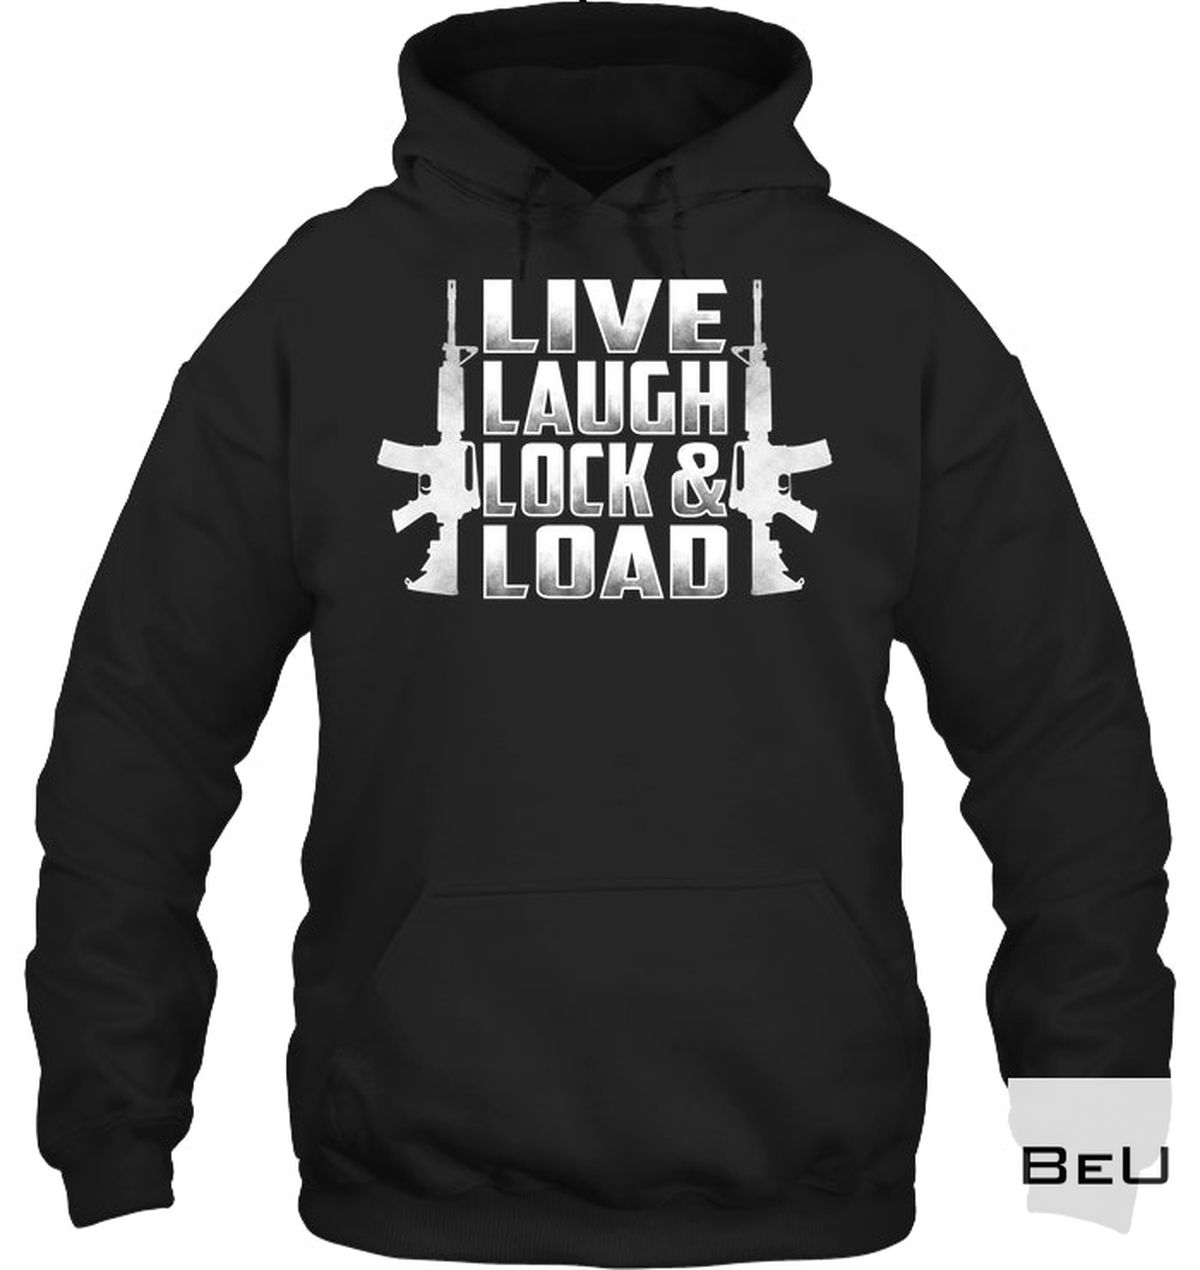 Fast Shipping Live Laugh Lock & Load Shirt, hoodie